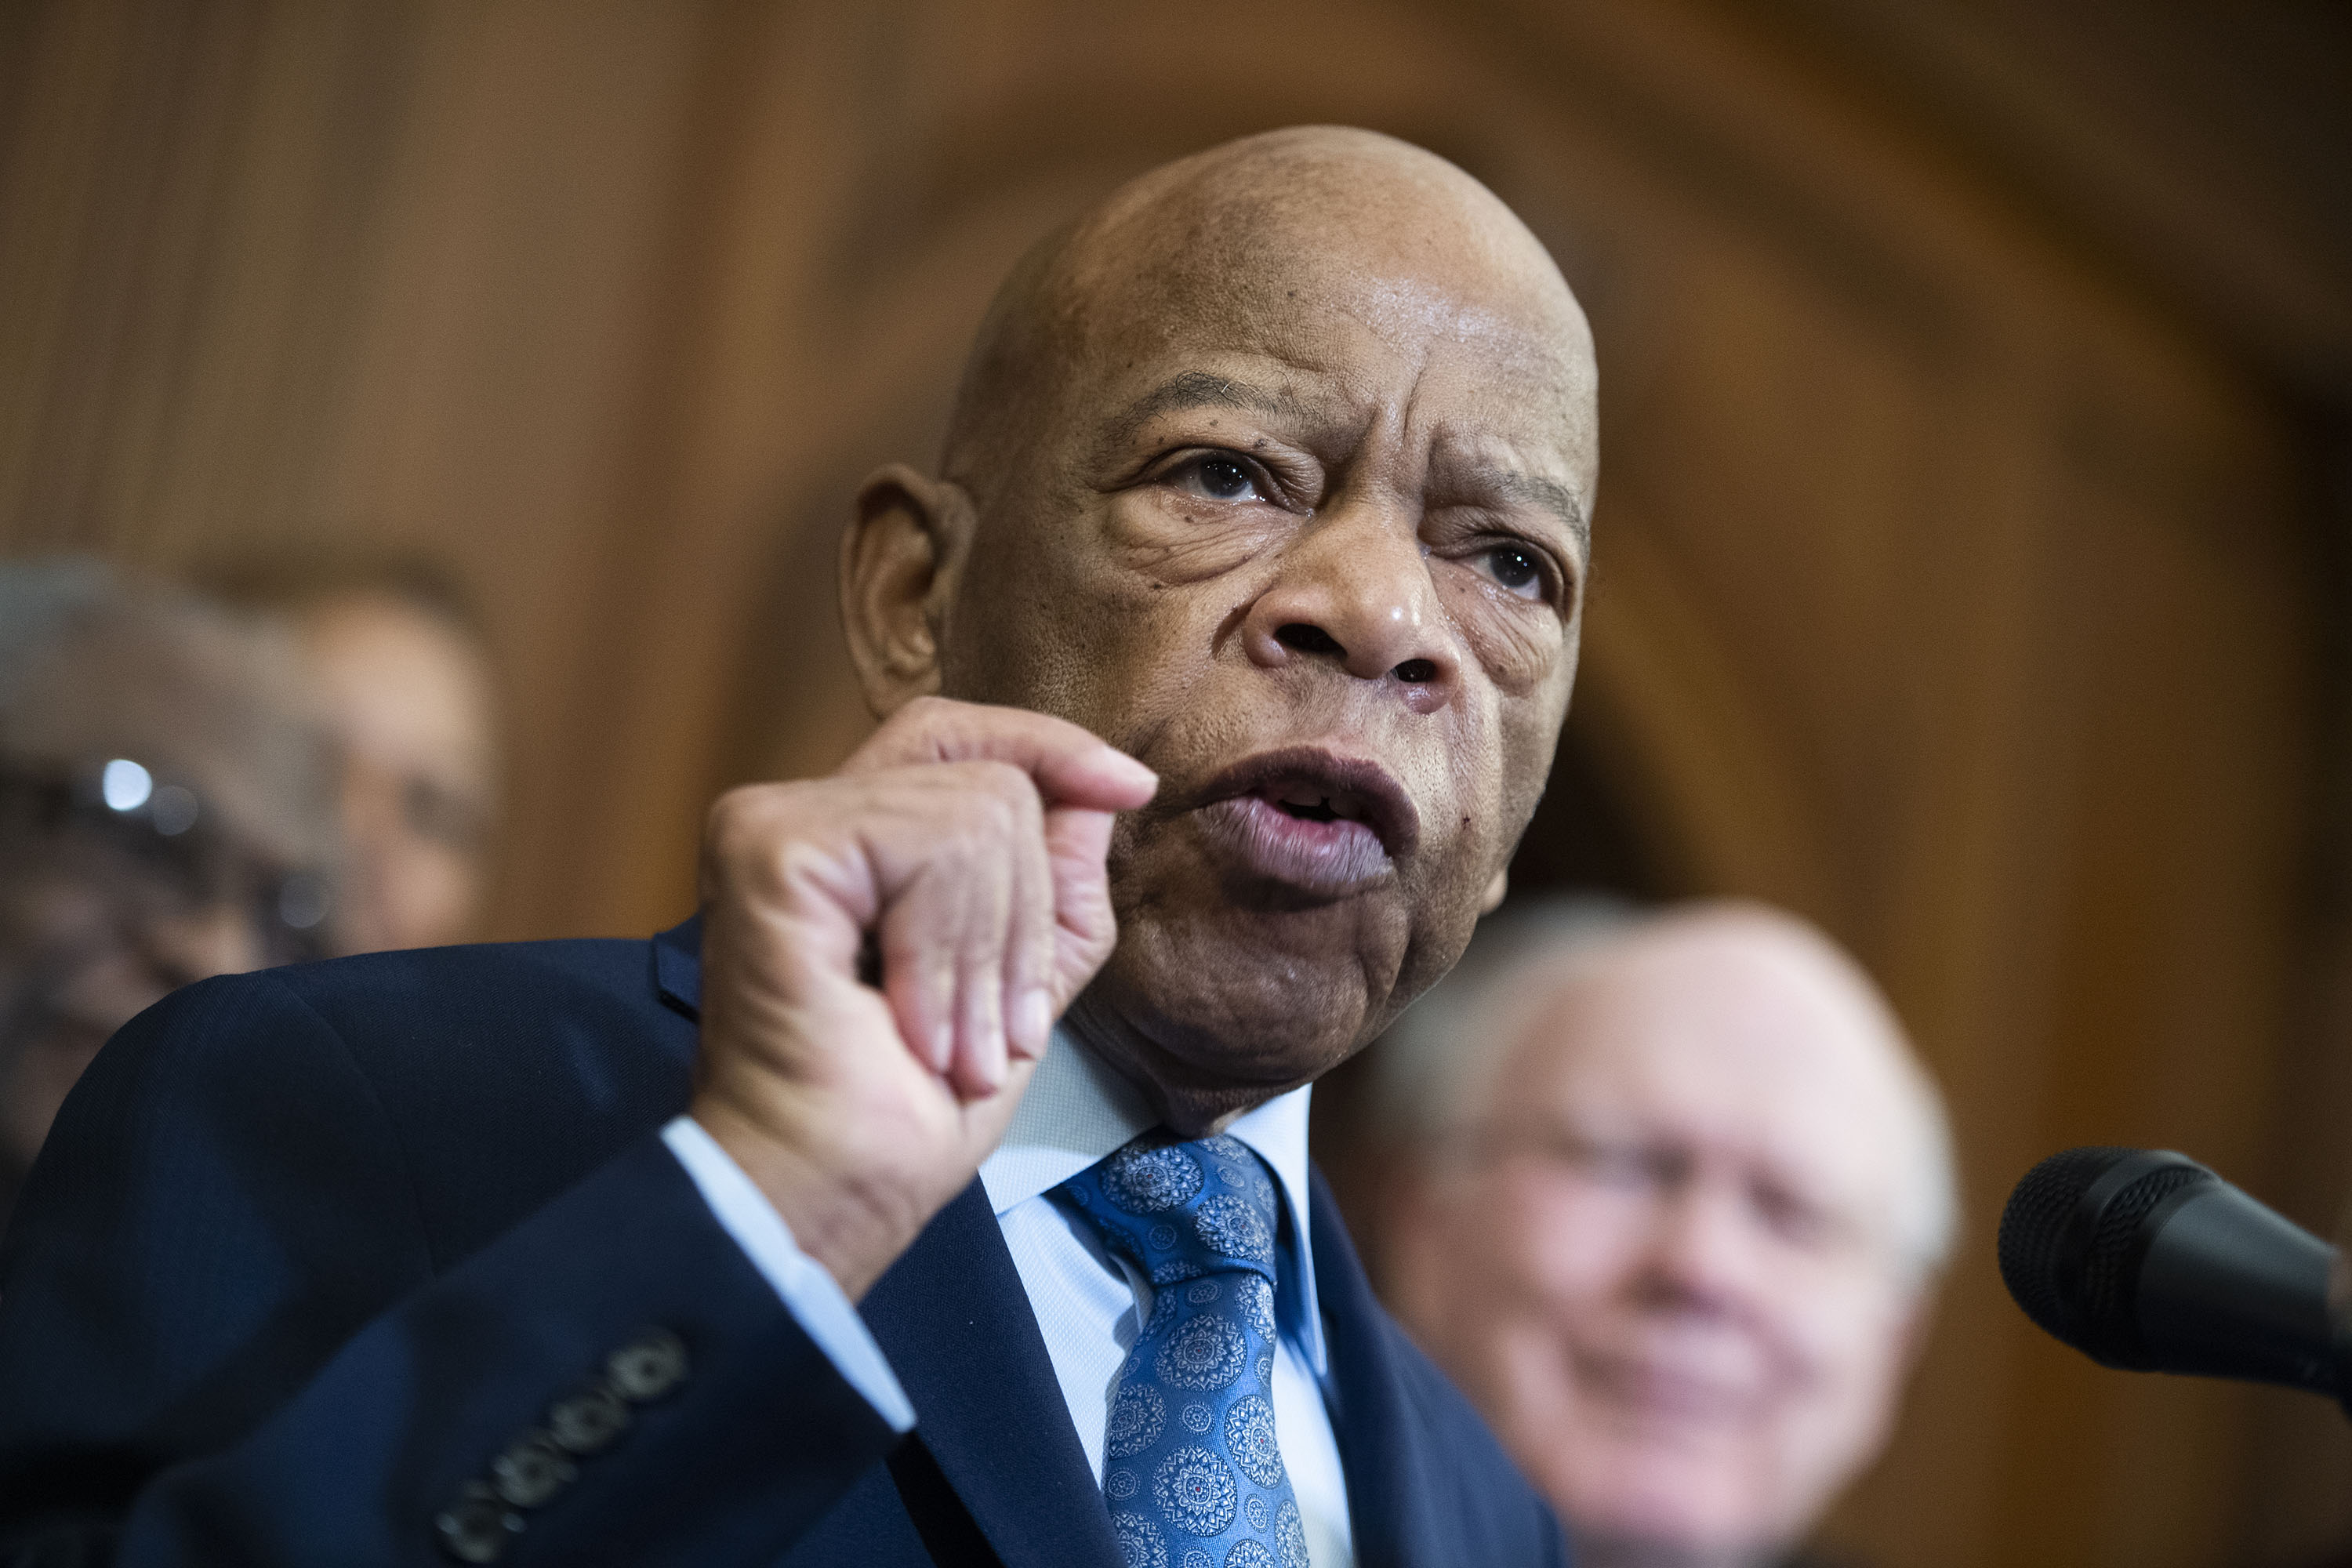 Rep. John Lewis, D-Ga., speaks during a news conference in the Capitol on the Voting Rights Advancement Act in Washington DC, on December 6, 2019.